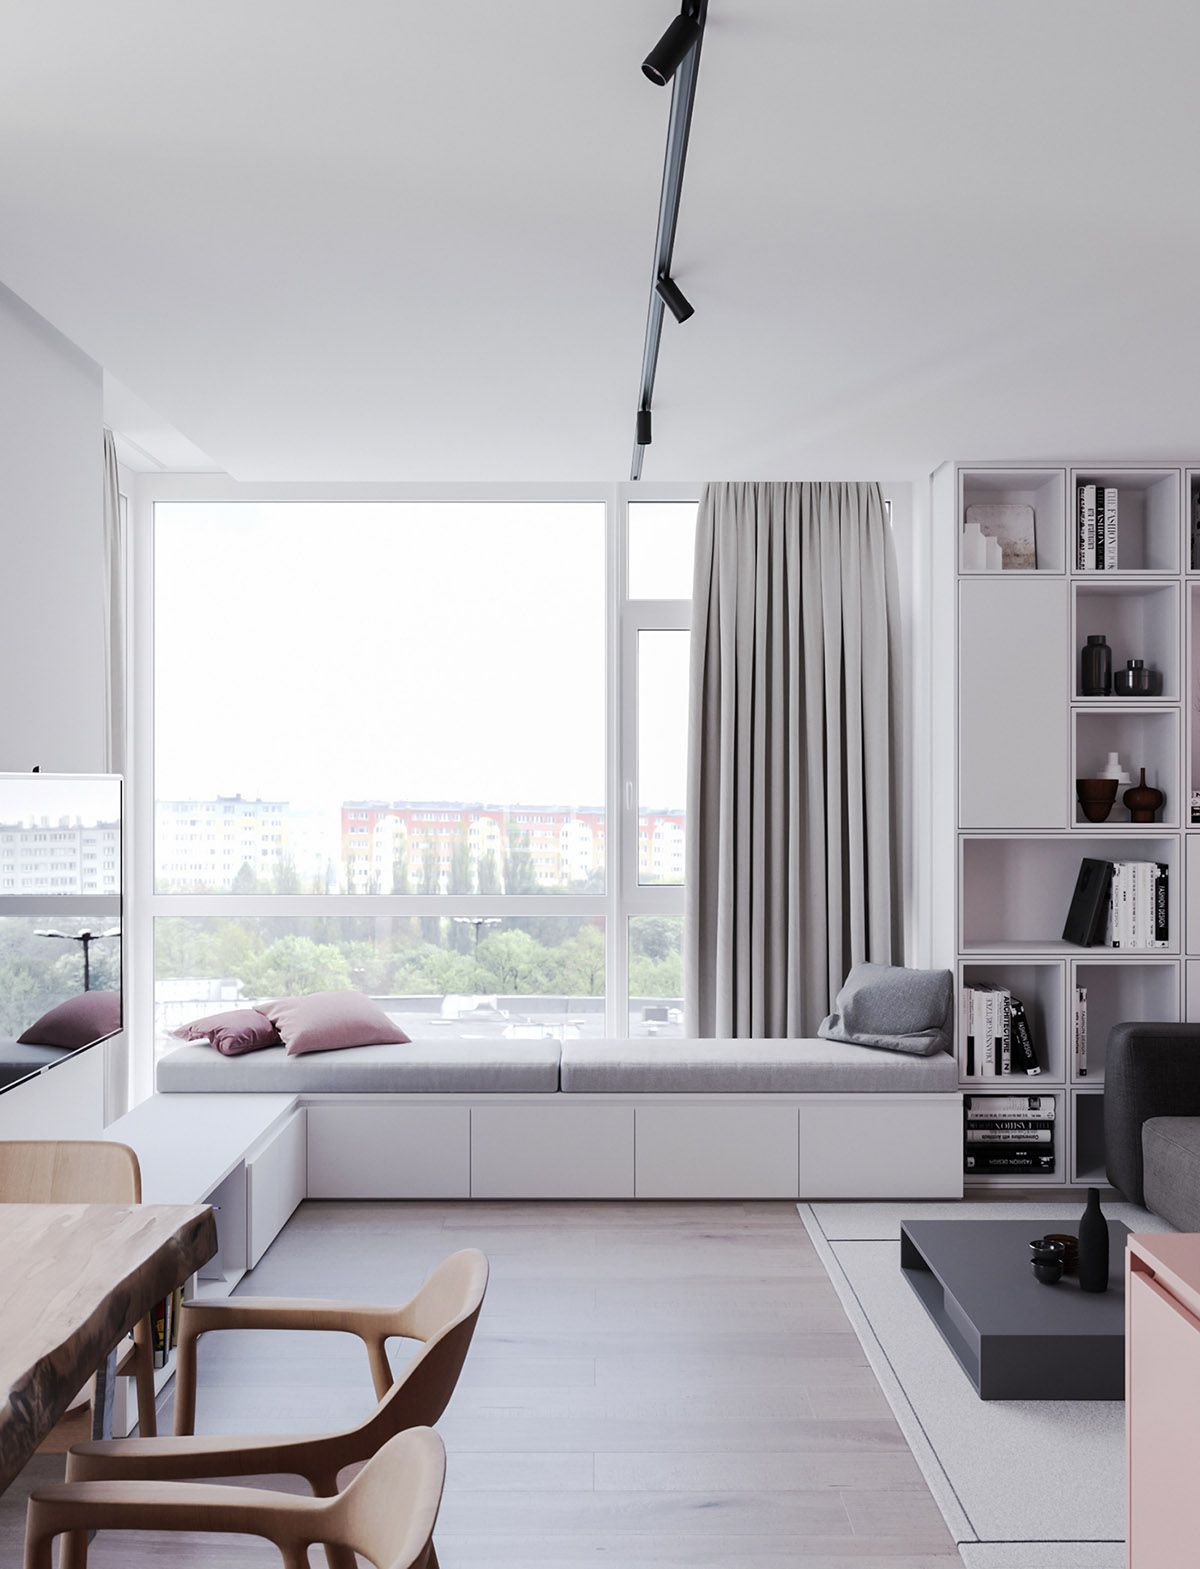 A Striking Example Of Interior Design Using Pink & Grey